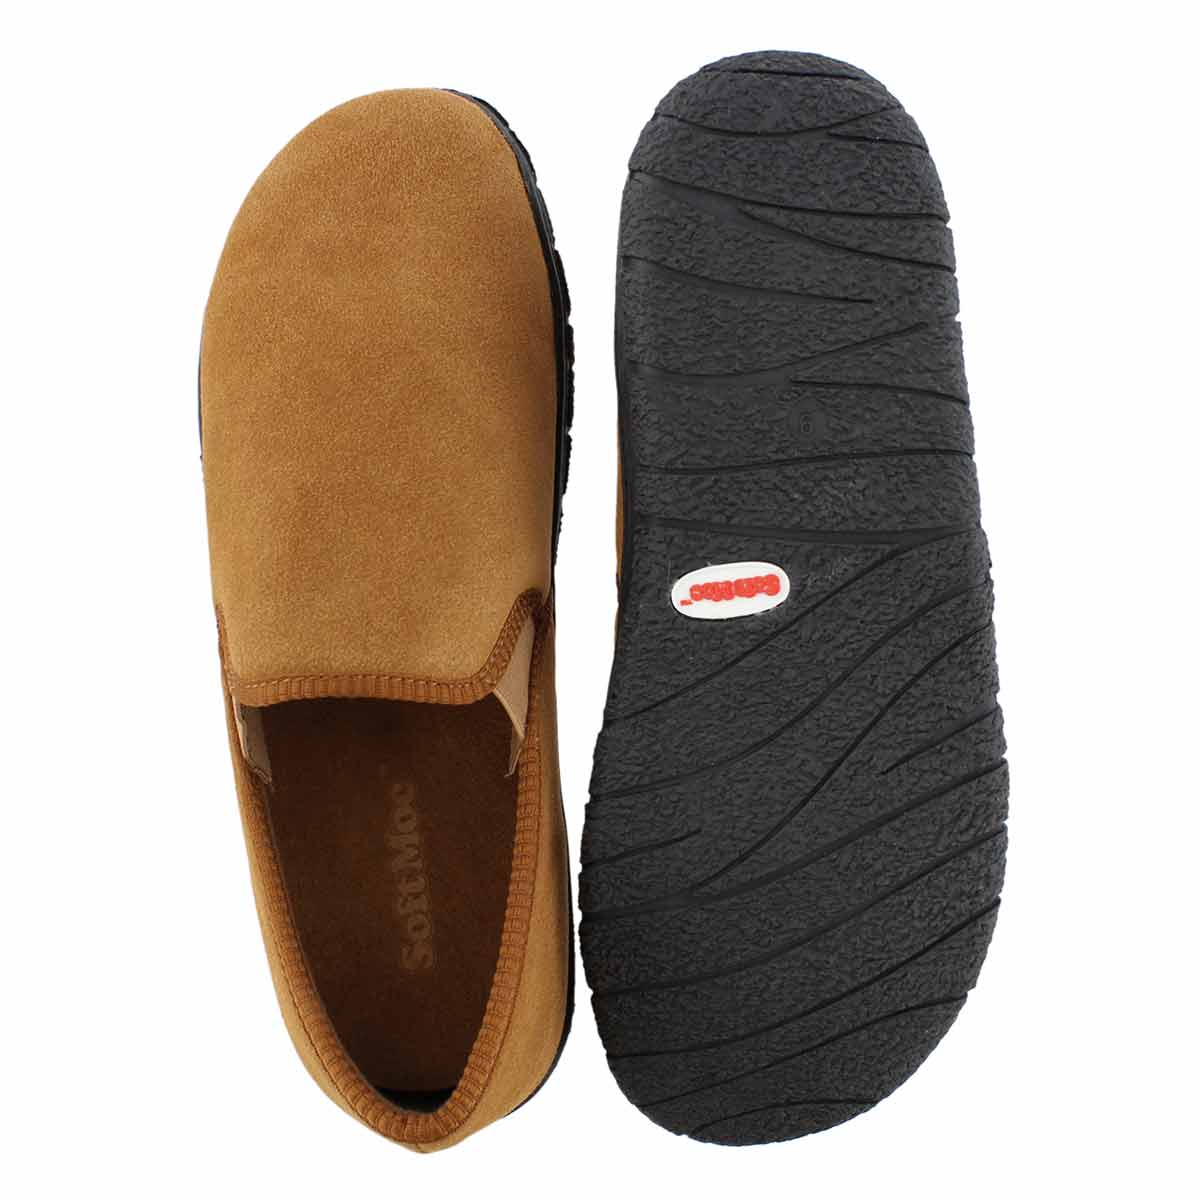 Mns Carlos brown closed back slipper